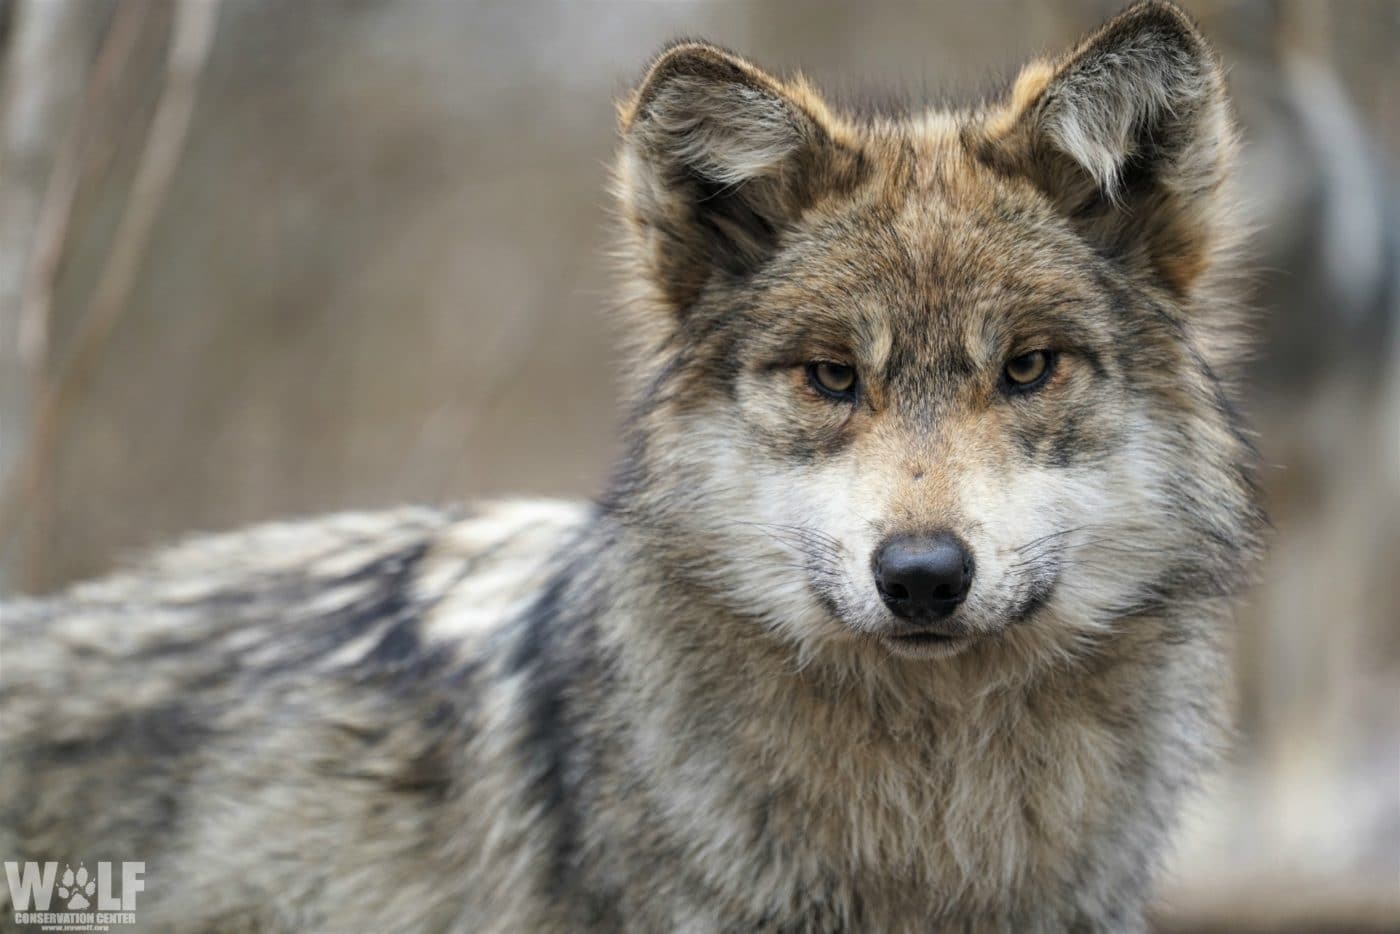 Study Finds Politics Resulted in Lower Recovery Goals for Mexican Gray Wolves